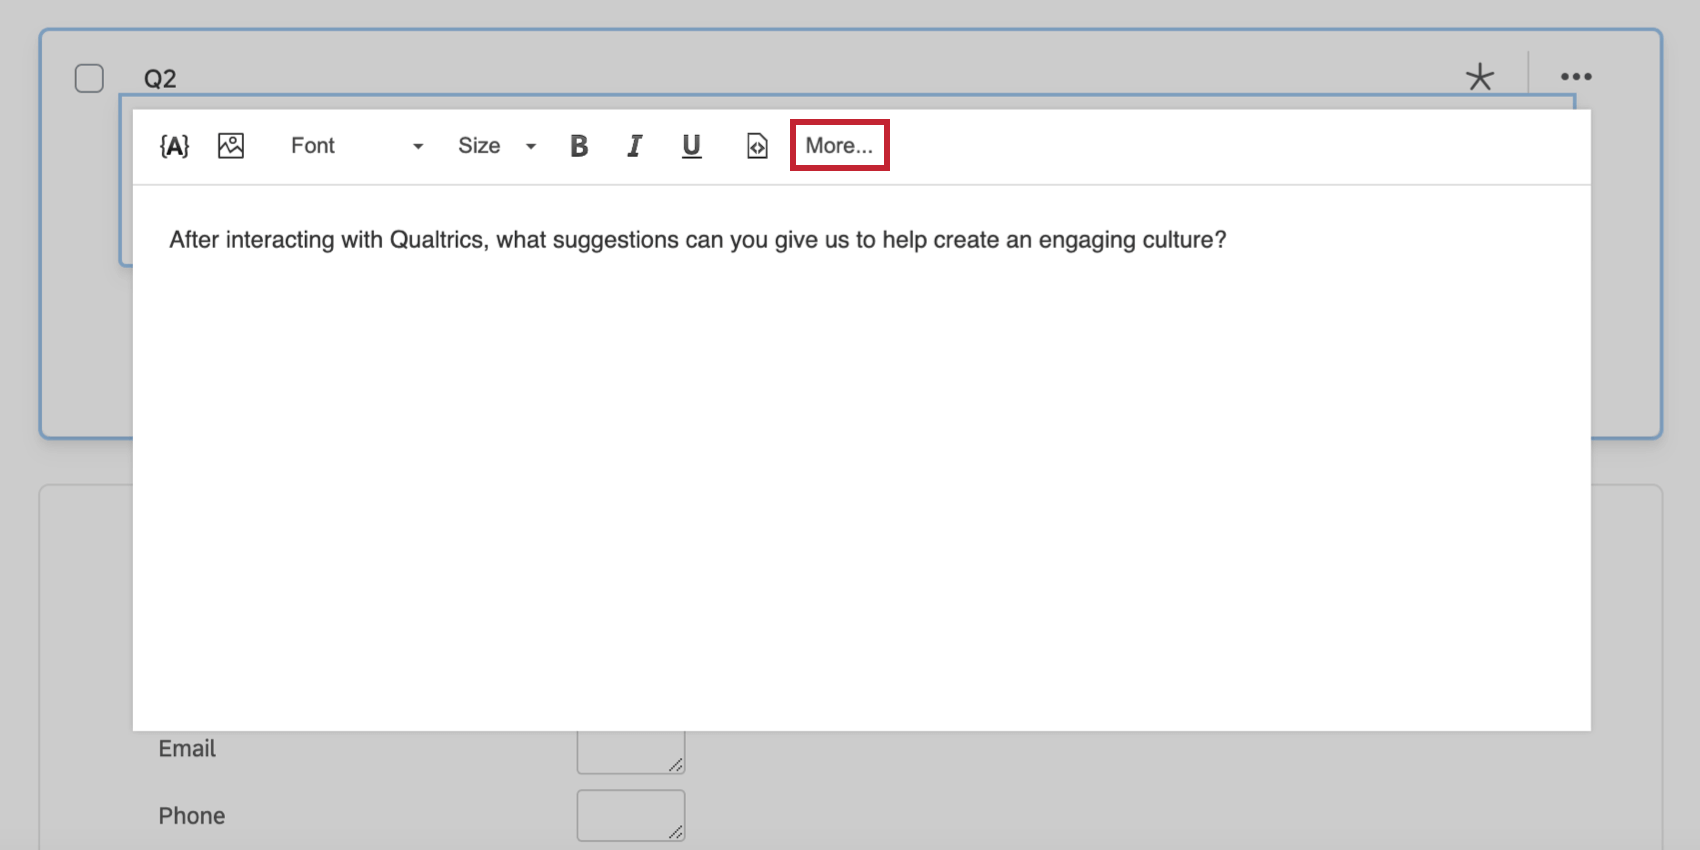 The More option in the rich content editor